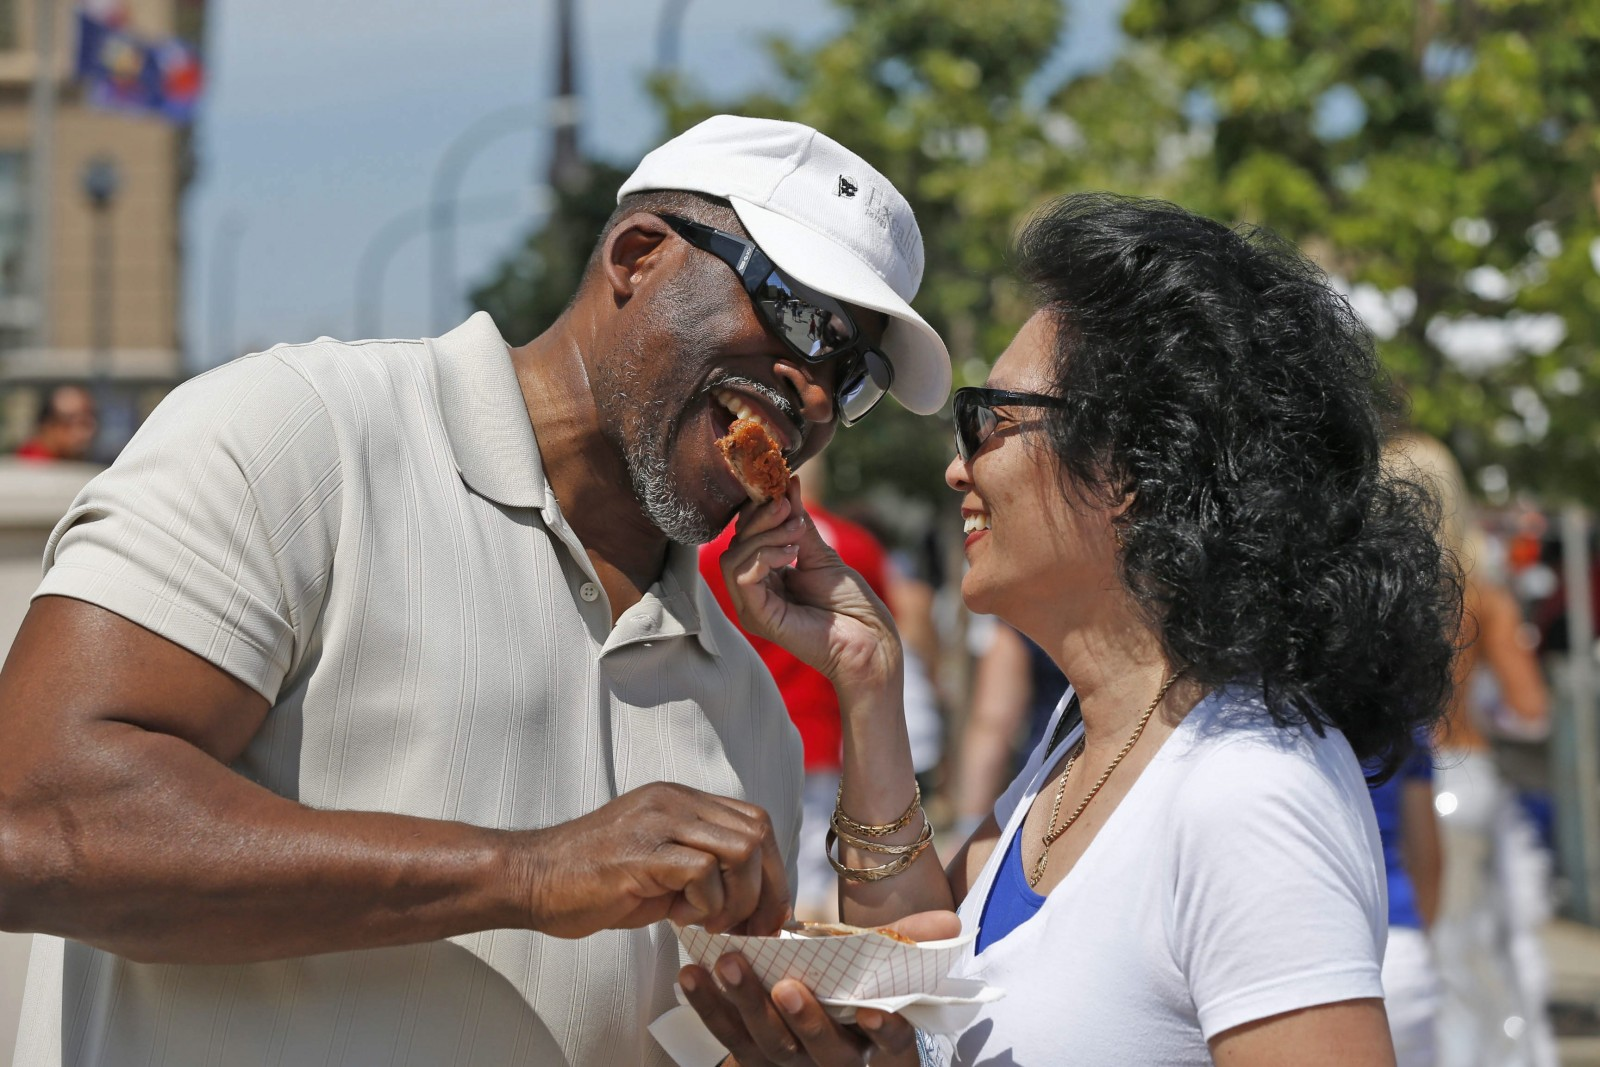 Sammy Que, of East Amherst, and Antoinette Mantanona, of Seattle, sample some chicken wings during the 2014 Taste of Buffalo. (Robert Kirkham/News file photo)